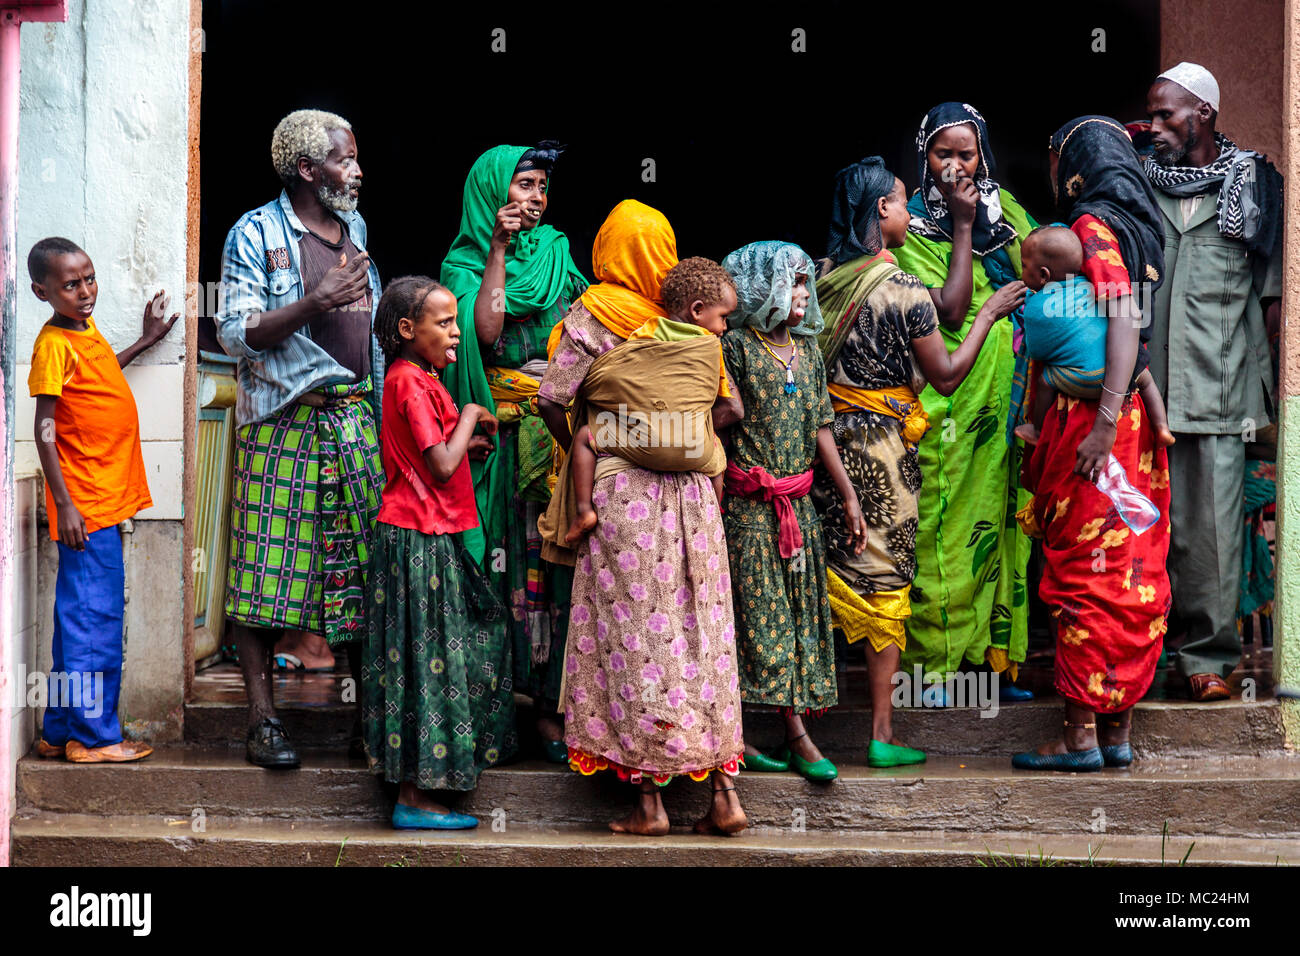 Ethiopian People Waiting For A Bus Near Dire Dawa, Ethiopia - Stock Image